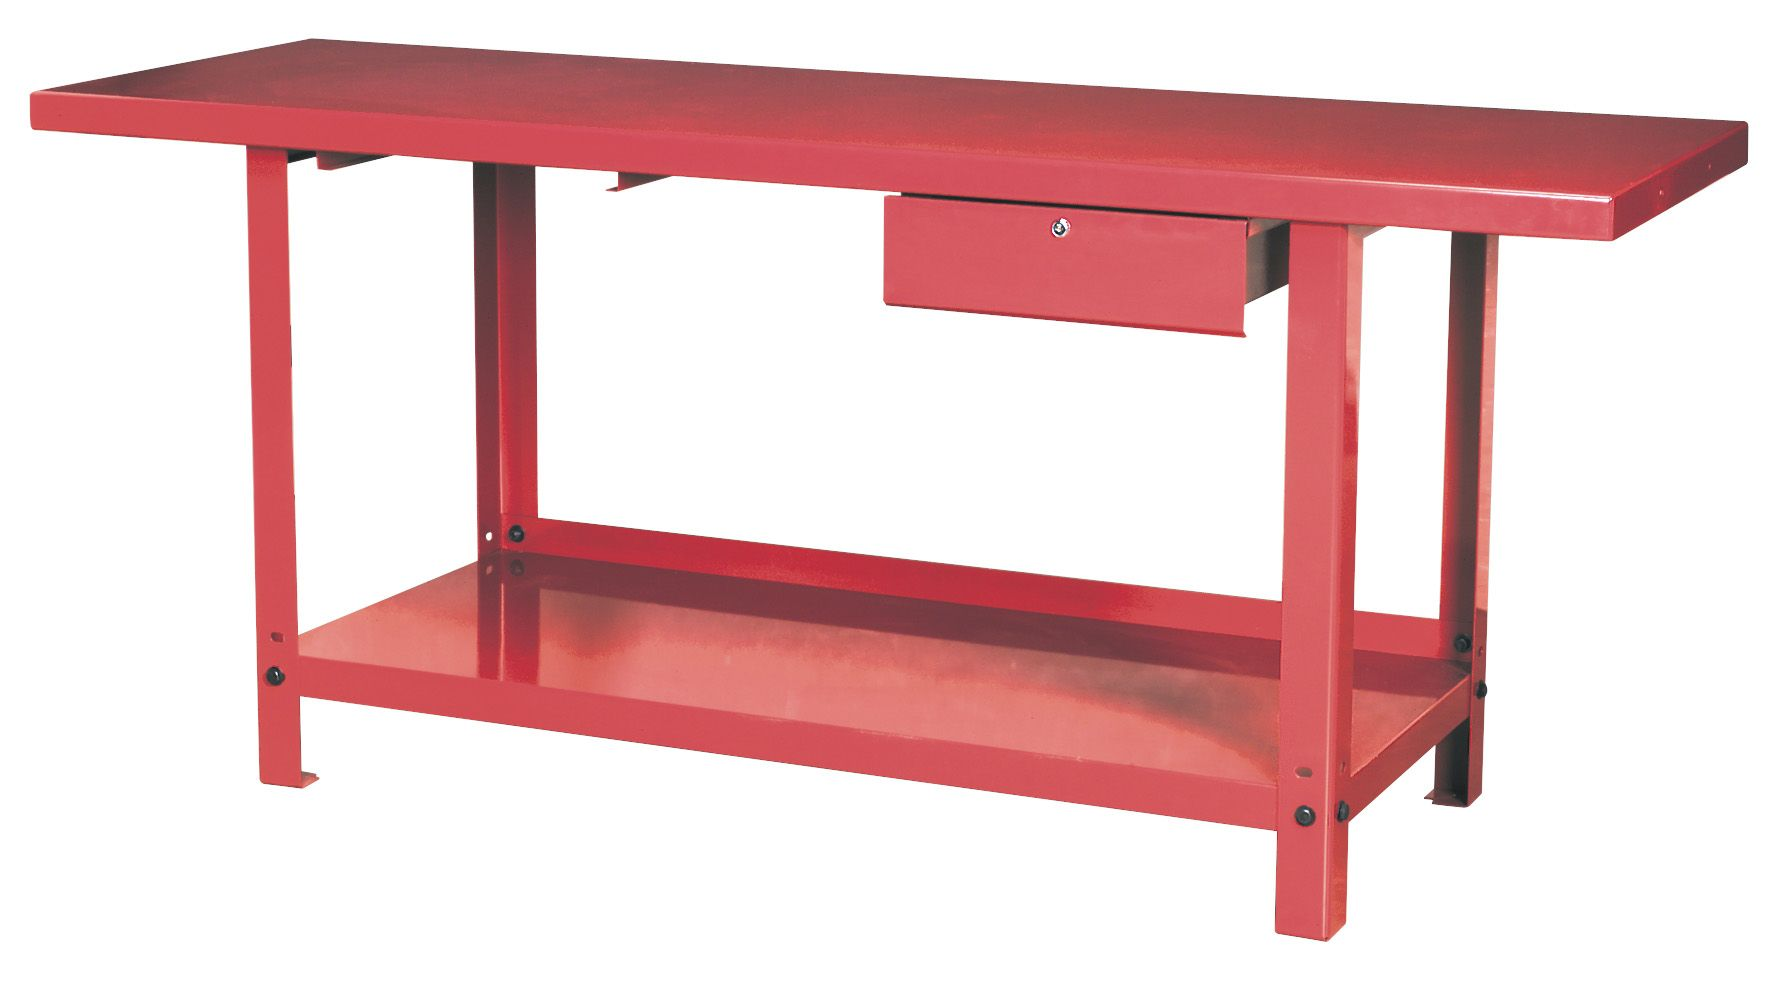 Sealey Workbench Steel 2m with 1 Drawer